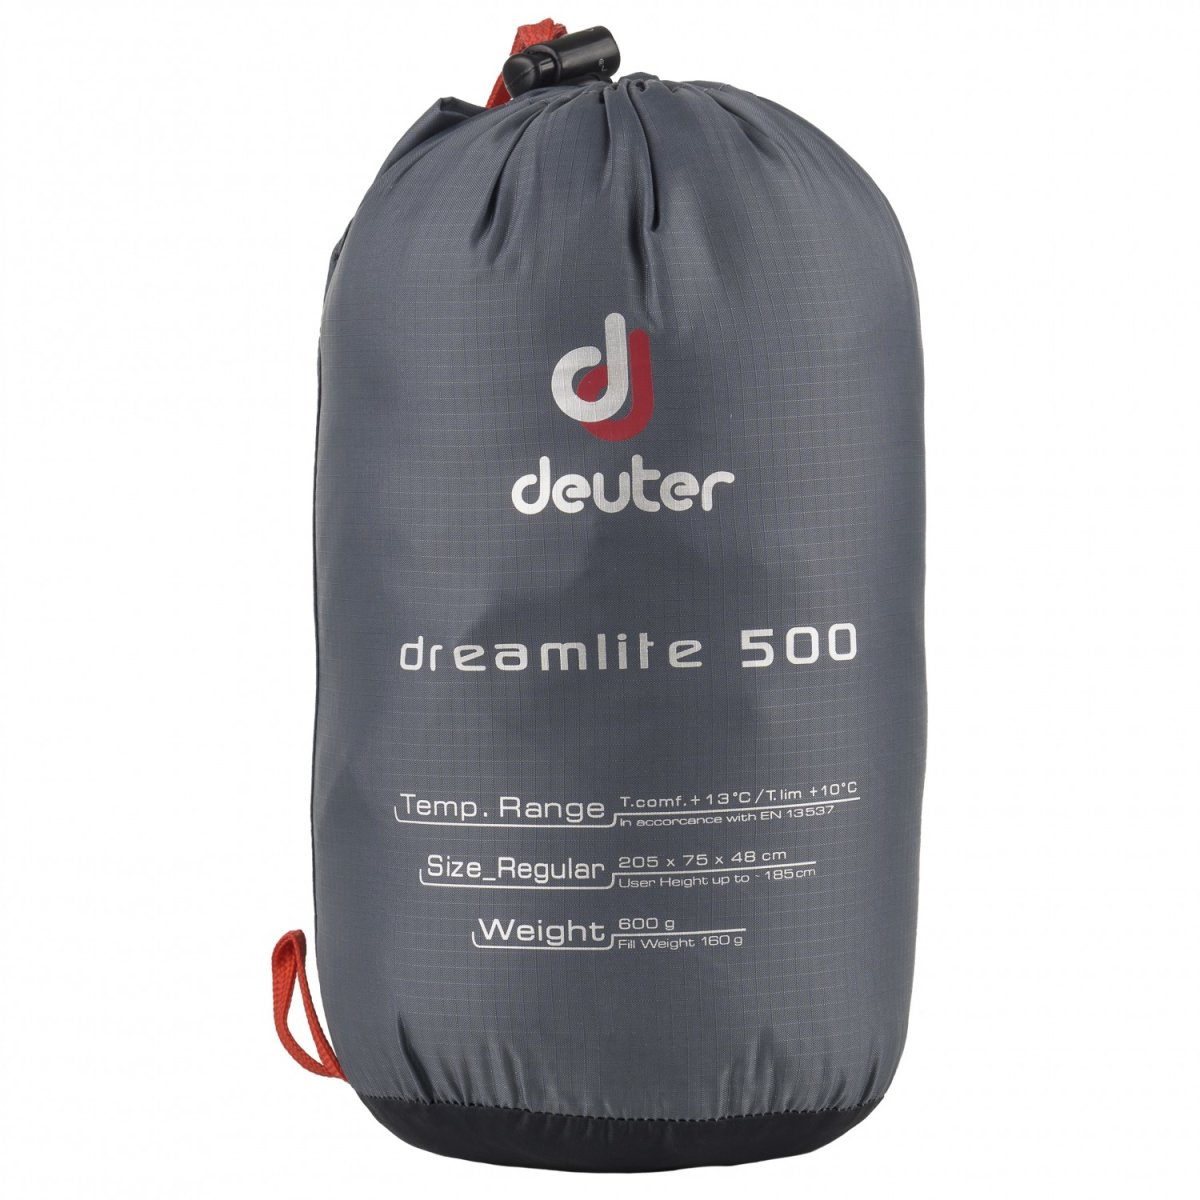 Спальник Deuter DREAM LITE 500 L left black grey 5 Спальник Deuter DREAM LITE 500 left black grey 37081 4100 1